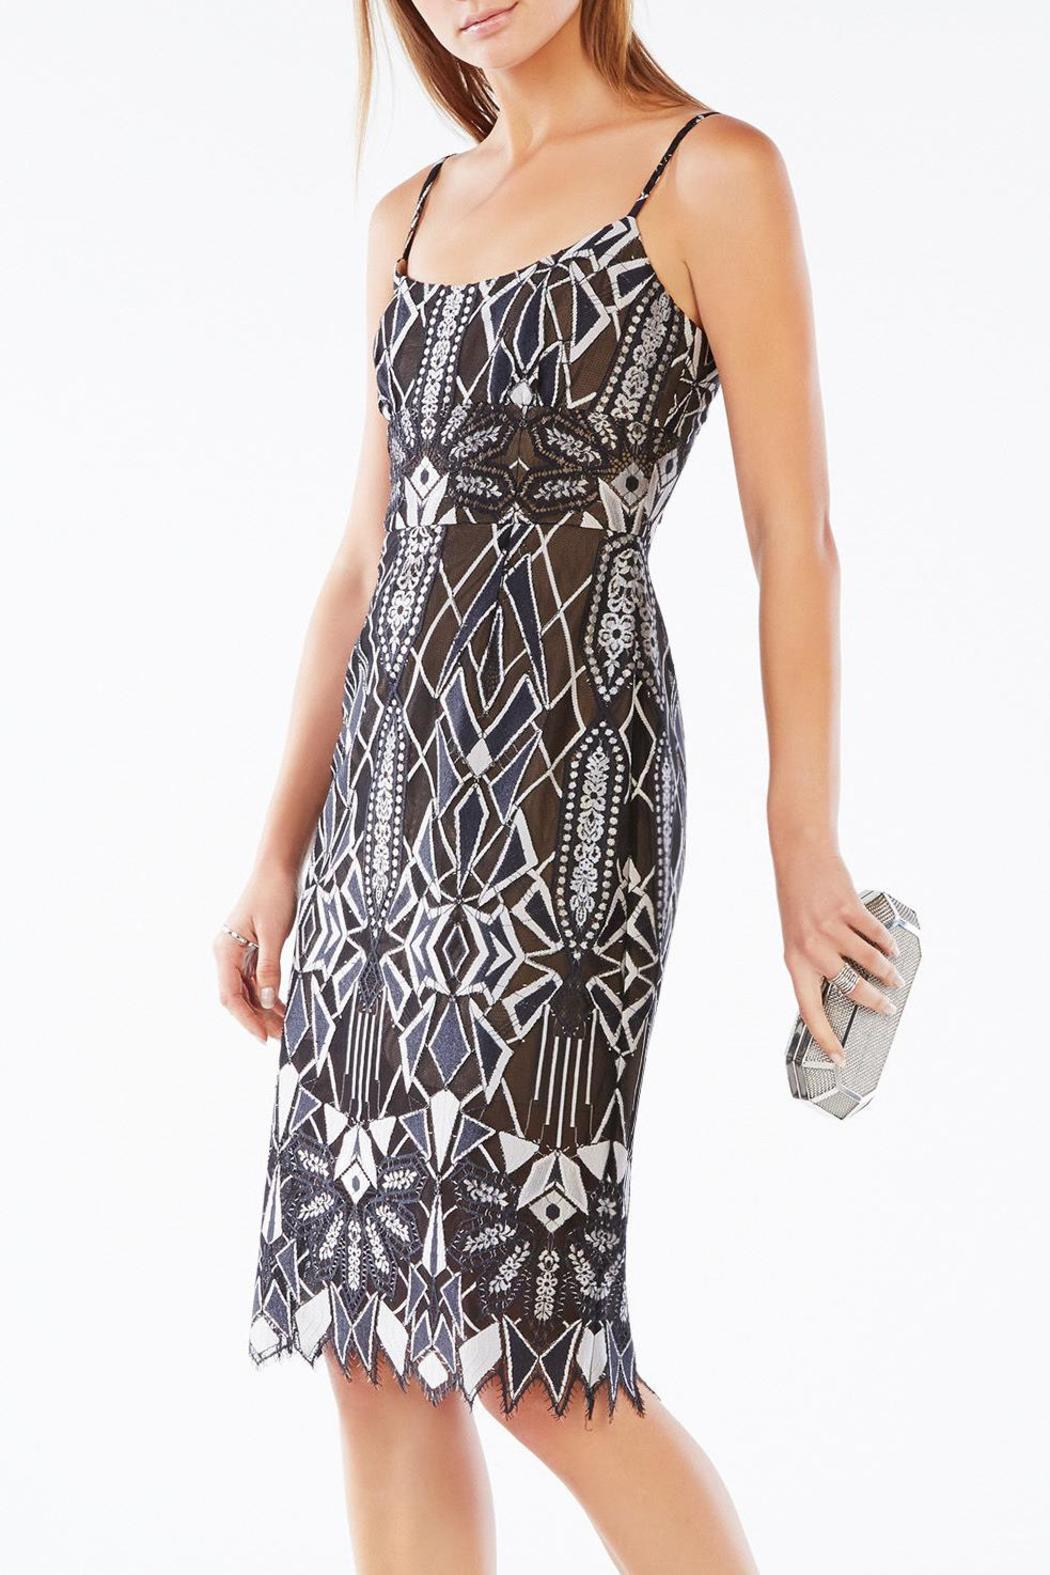 BCBG Max Azria Alese Lace Dress - Front Full Image